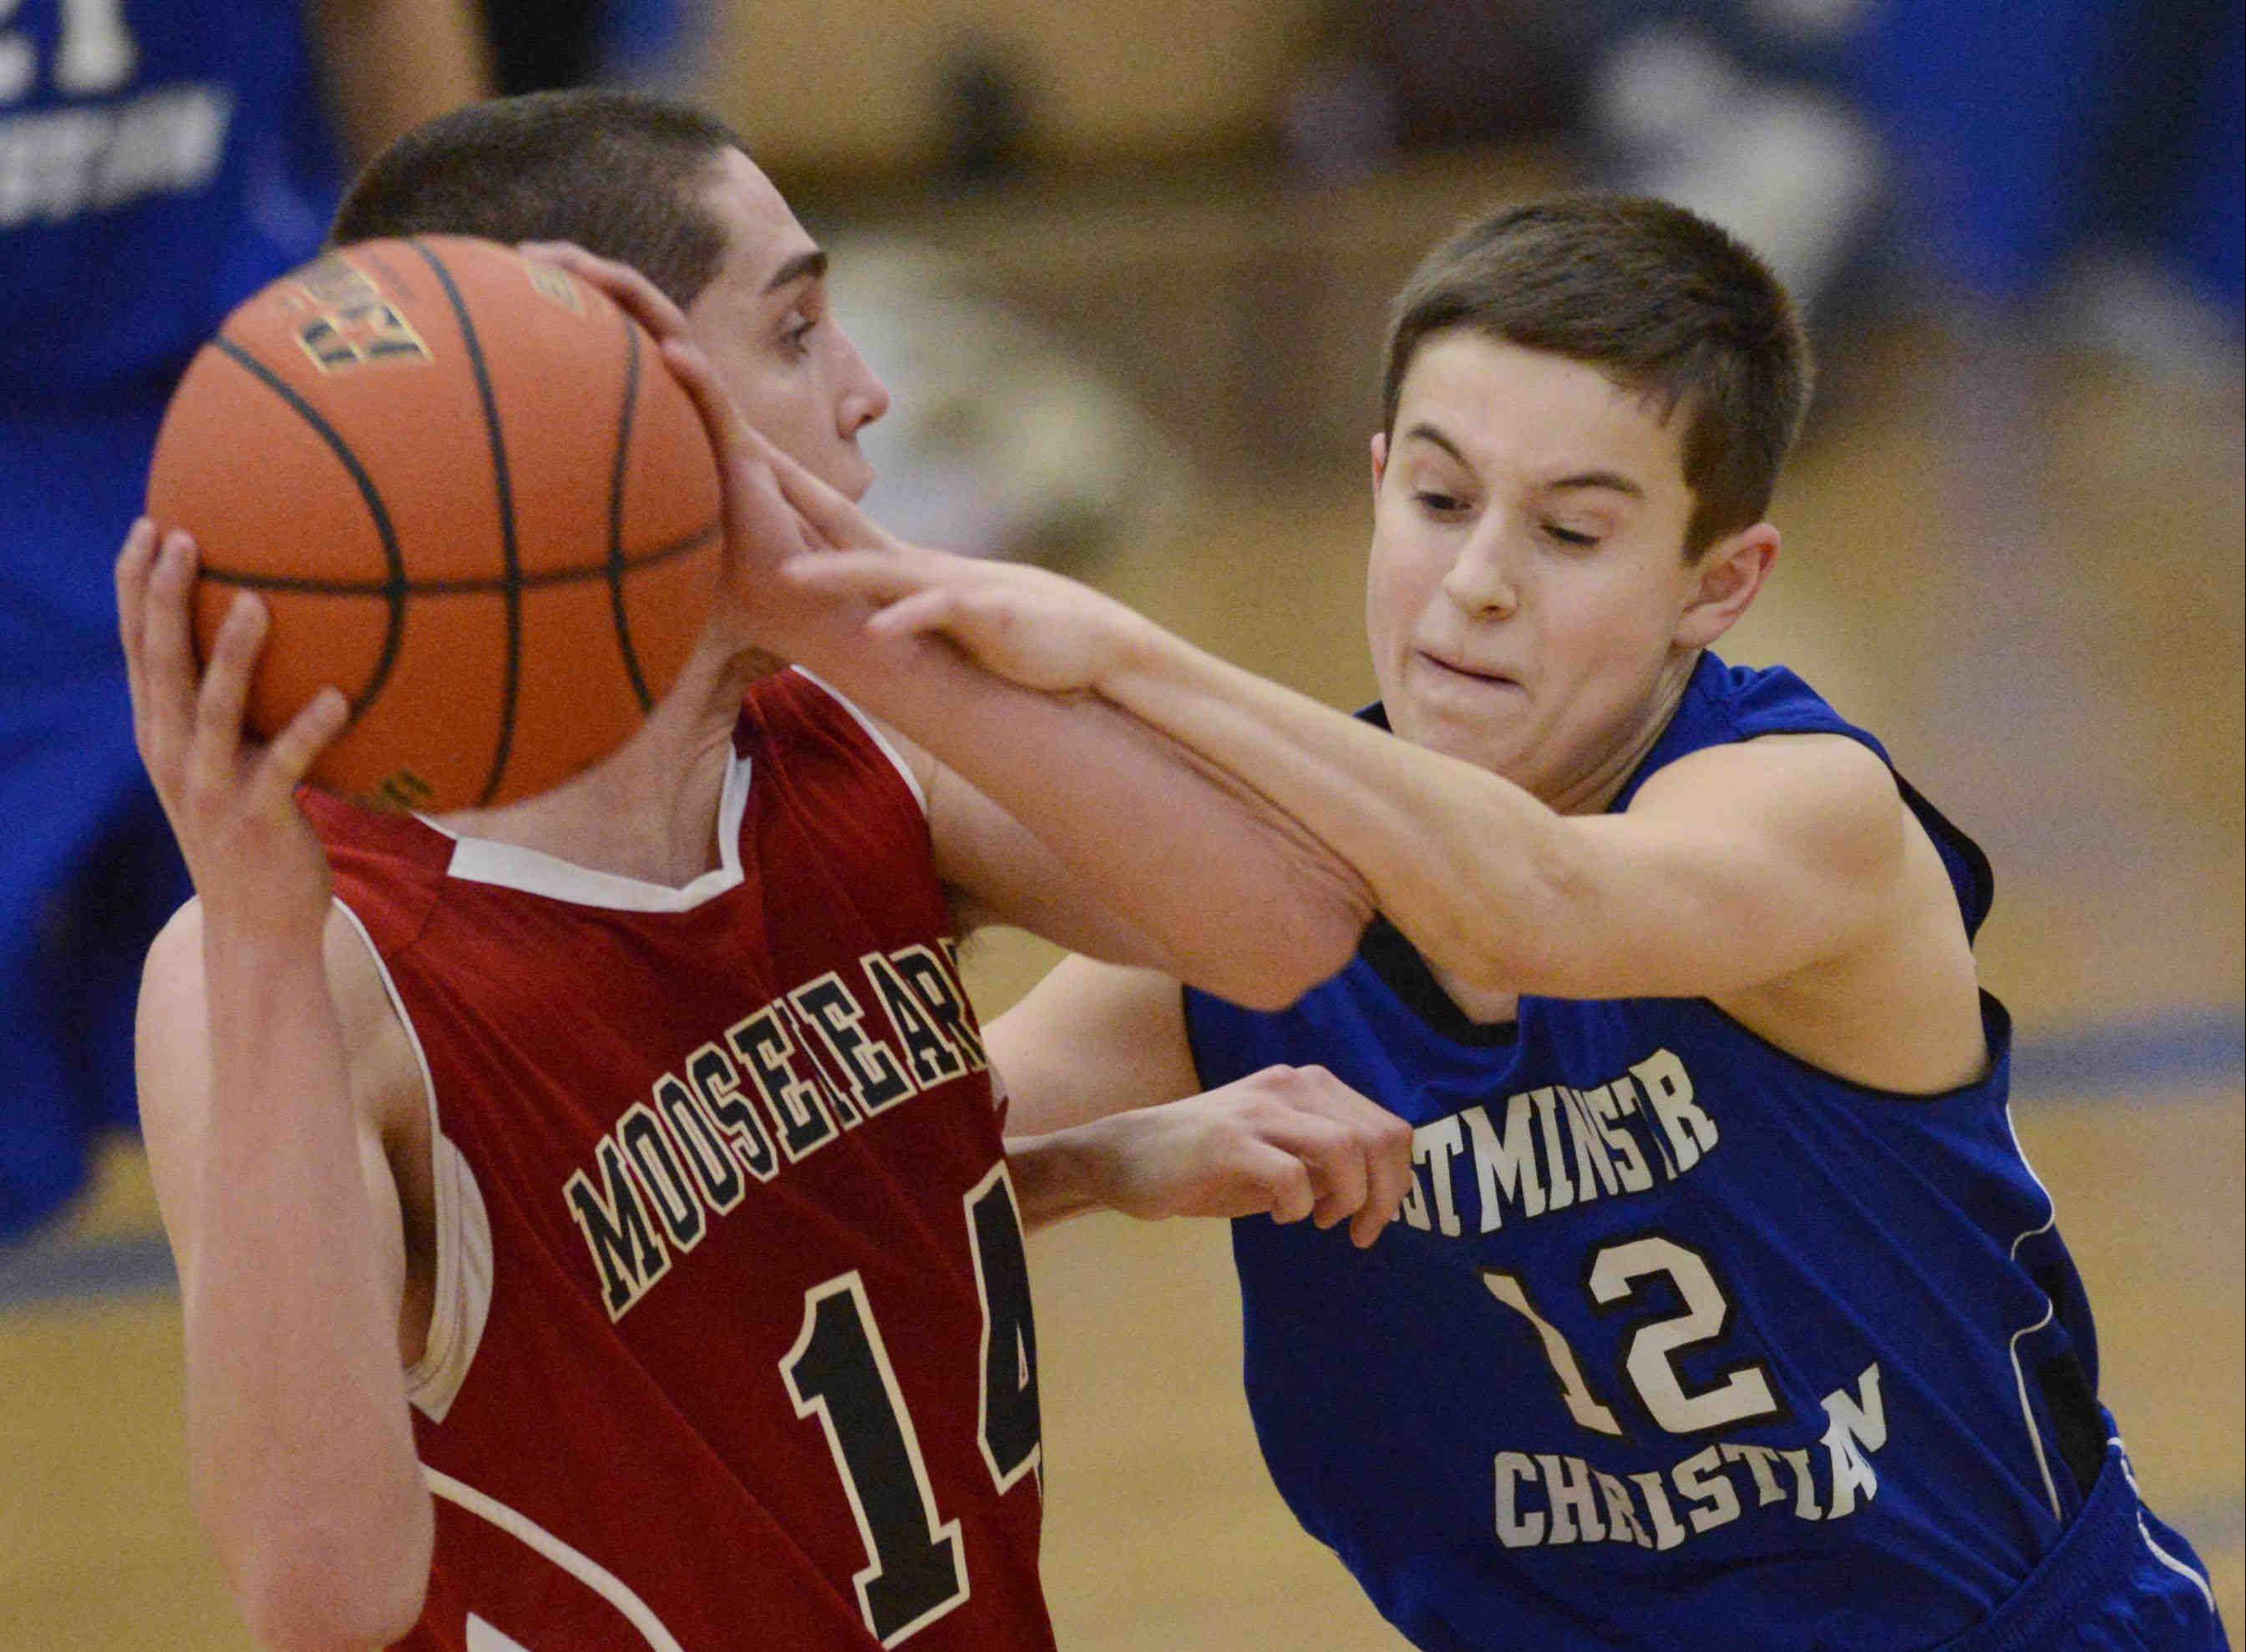 Westminster Christian's Dillon Rejman commits a reaching foul against Mooseheart's Peter Kurowski Wednesday in Elgin.